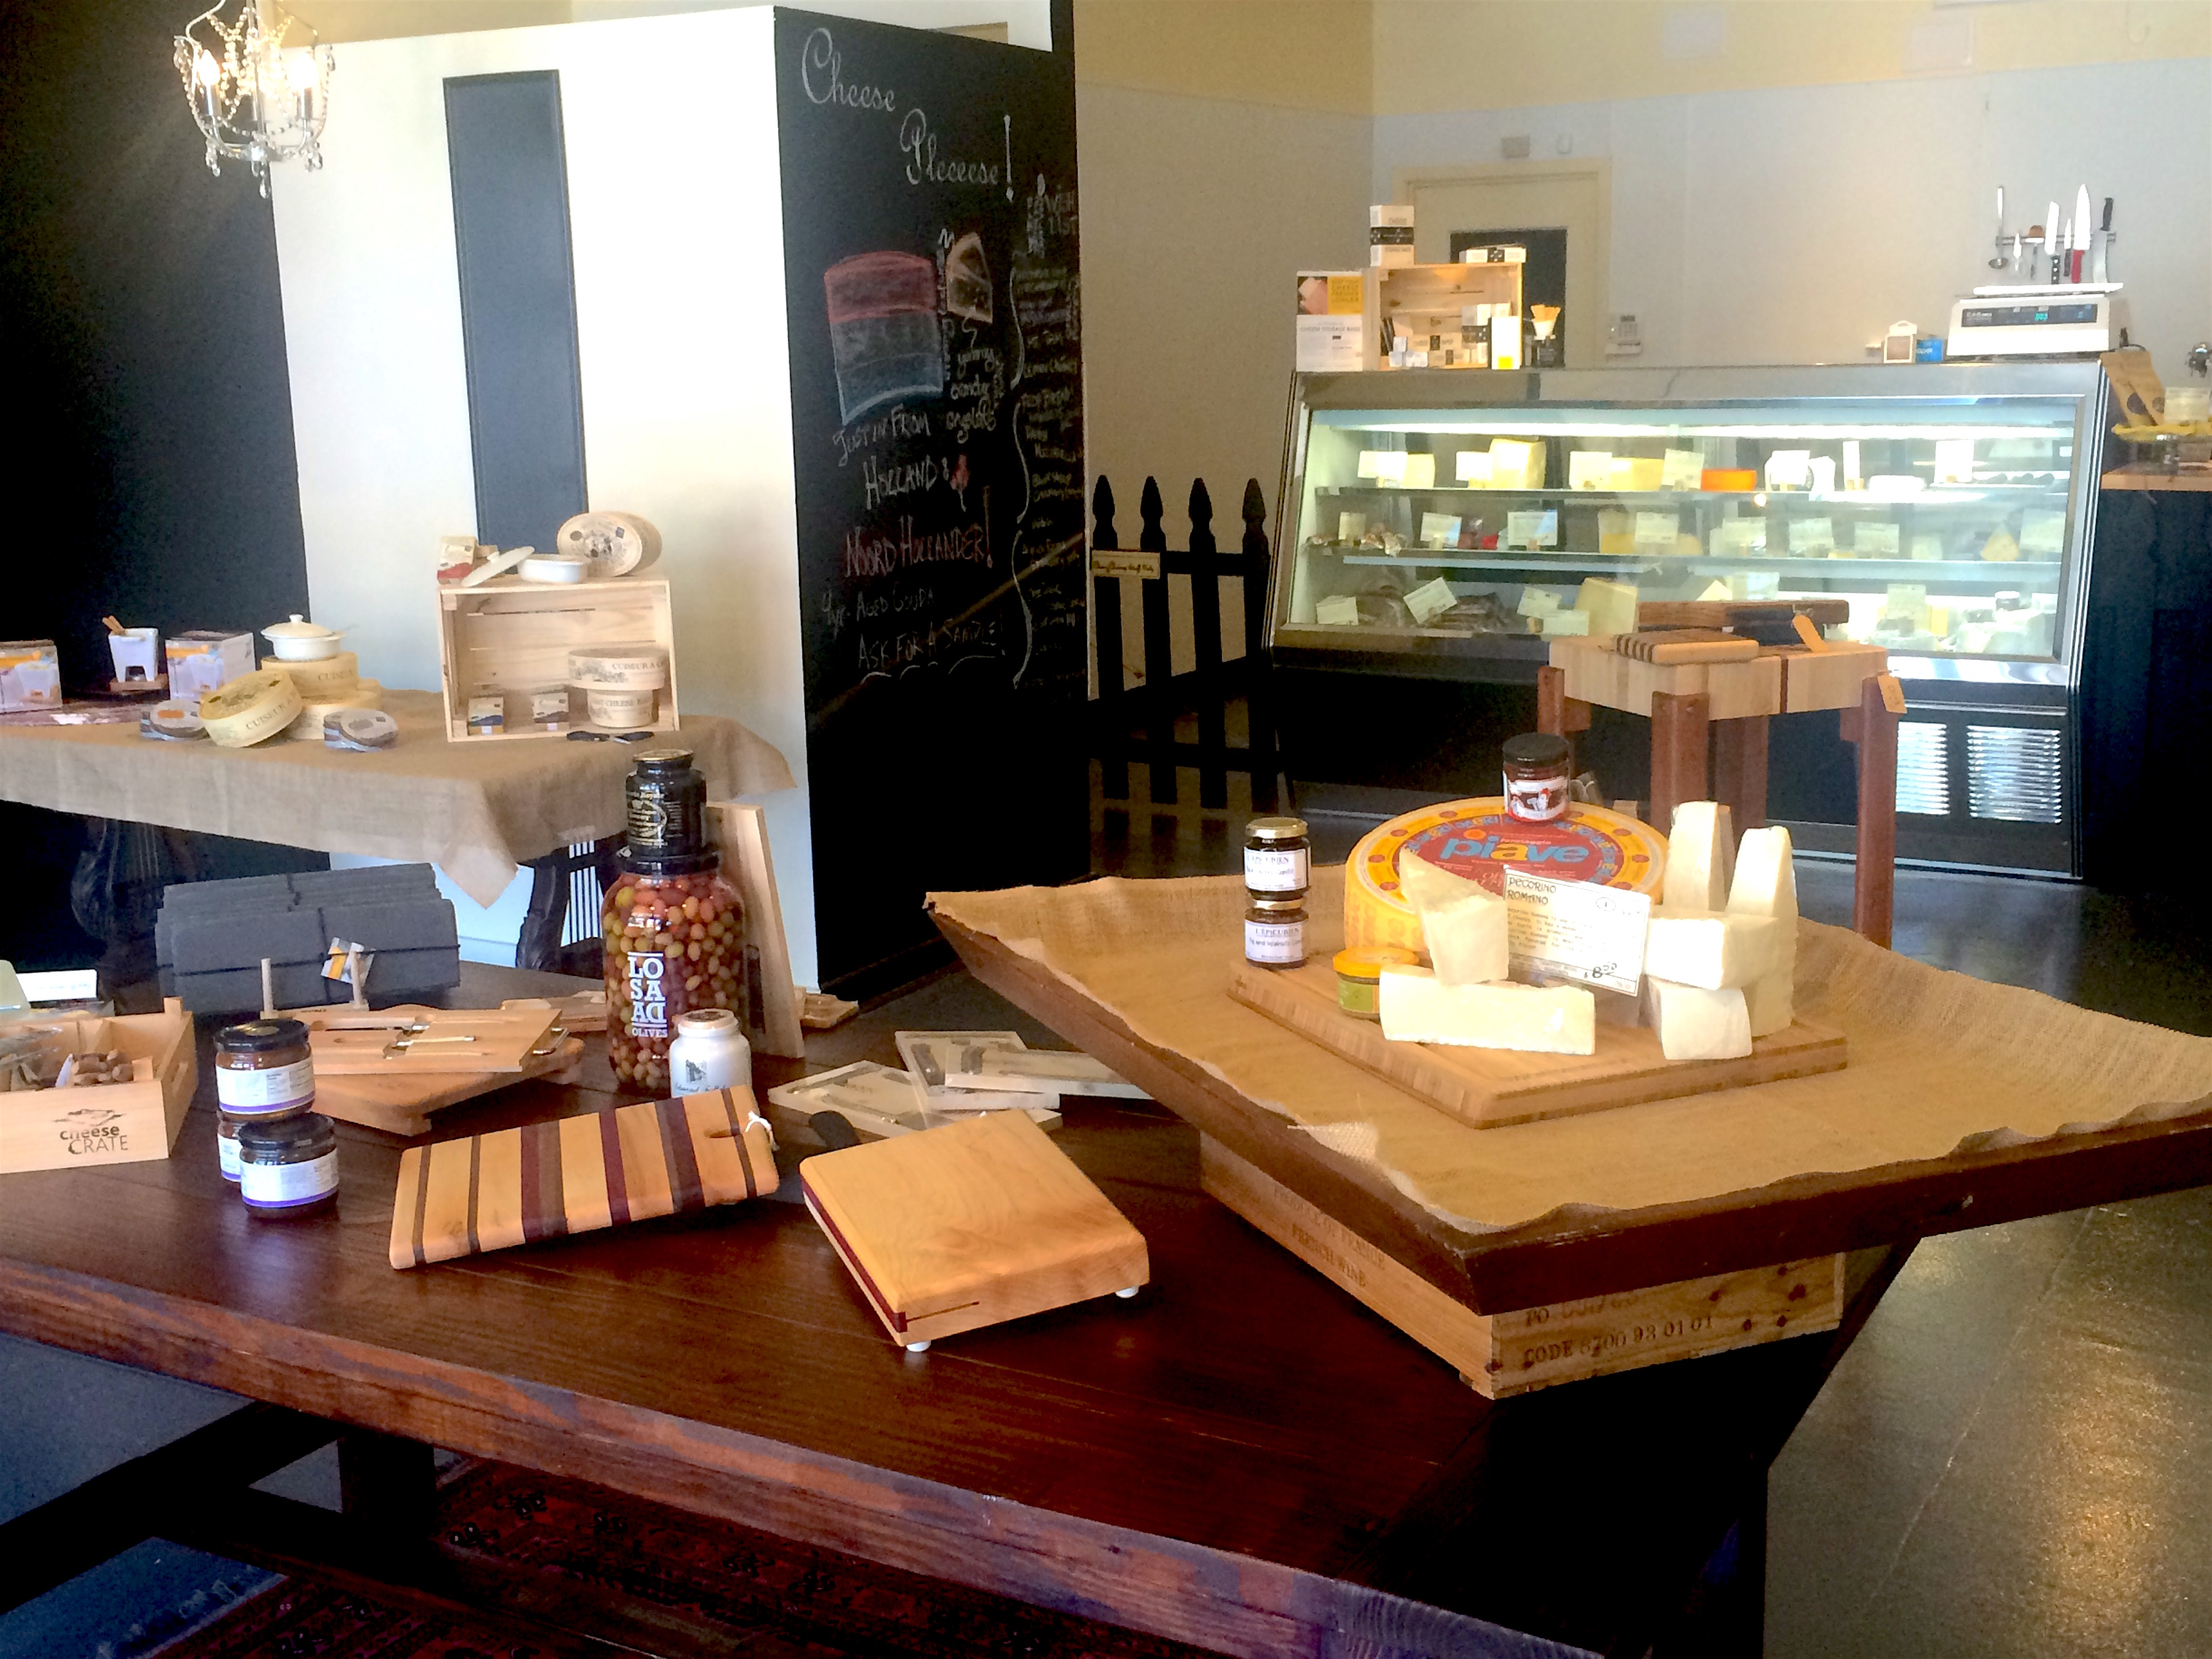 The shop sells a selection of cheese accountrements in addition to its case of cheese. (Photo courtesy of Cheese & Chutney.)